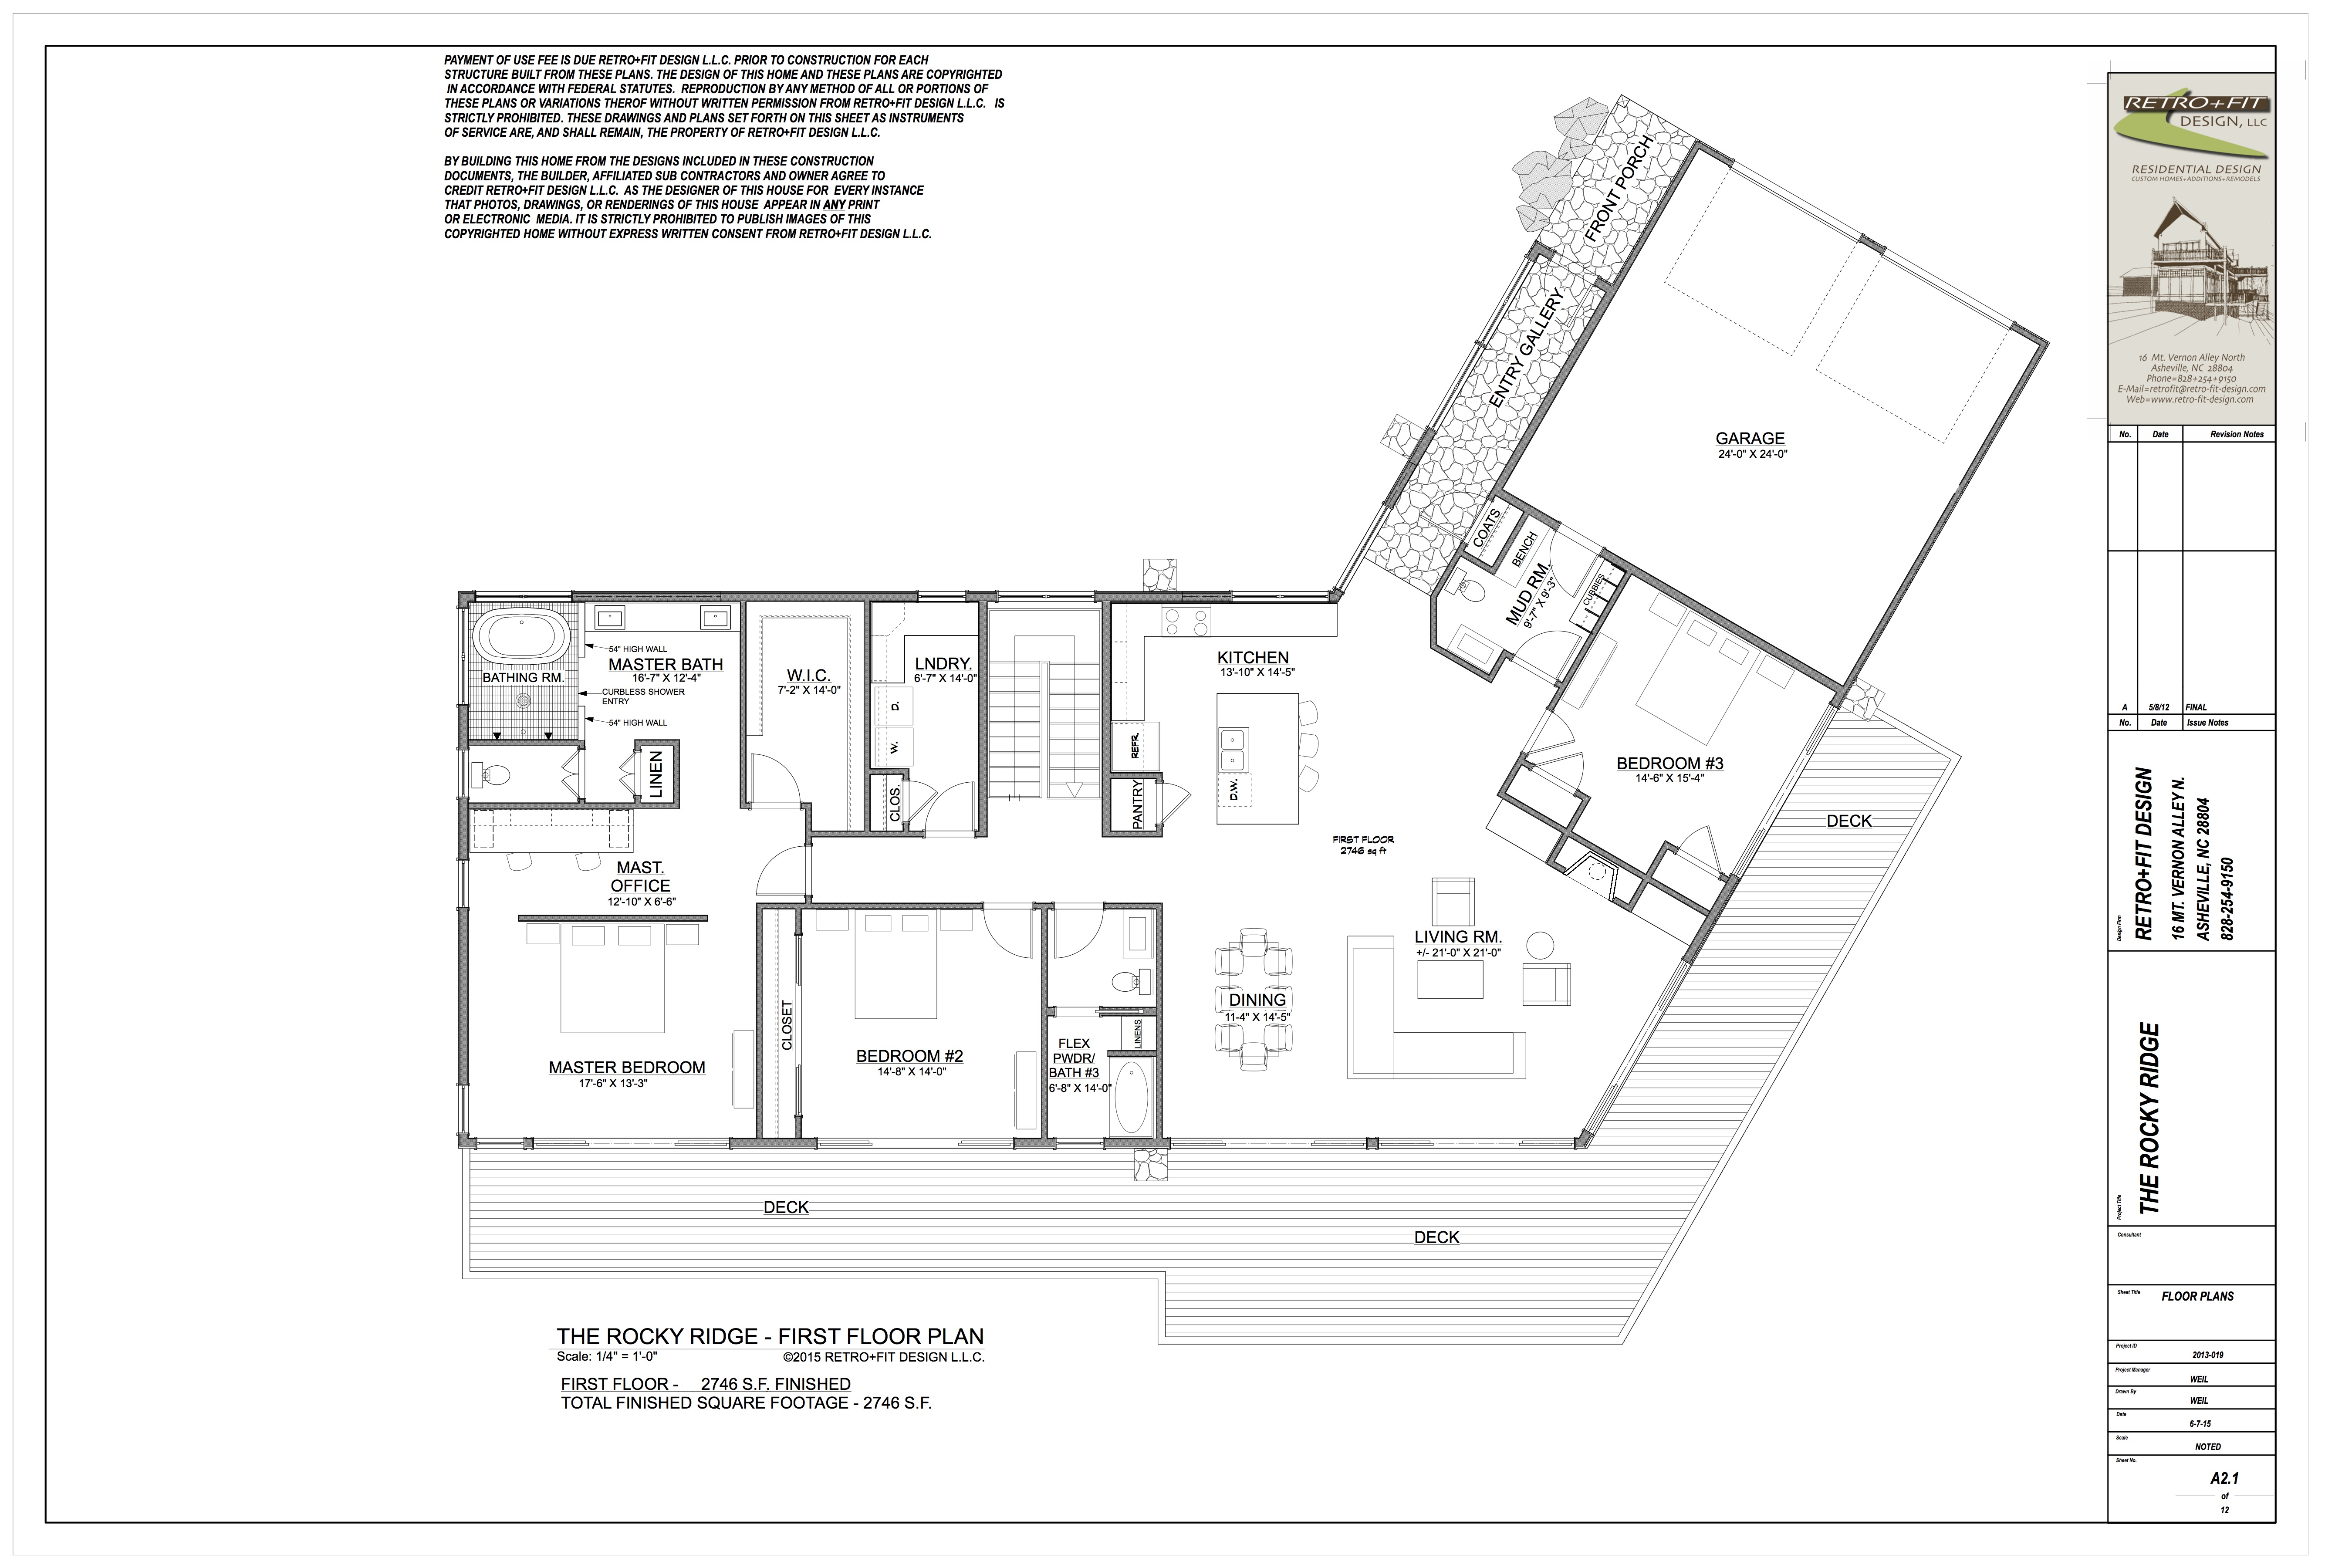 THE ROCKY RIDGE FLOOR PLAN